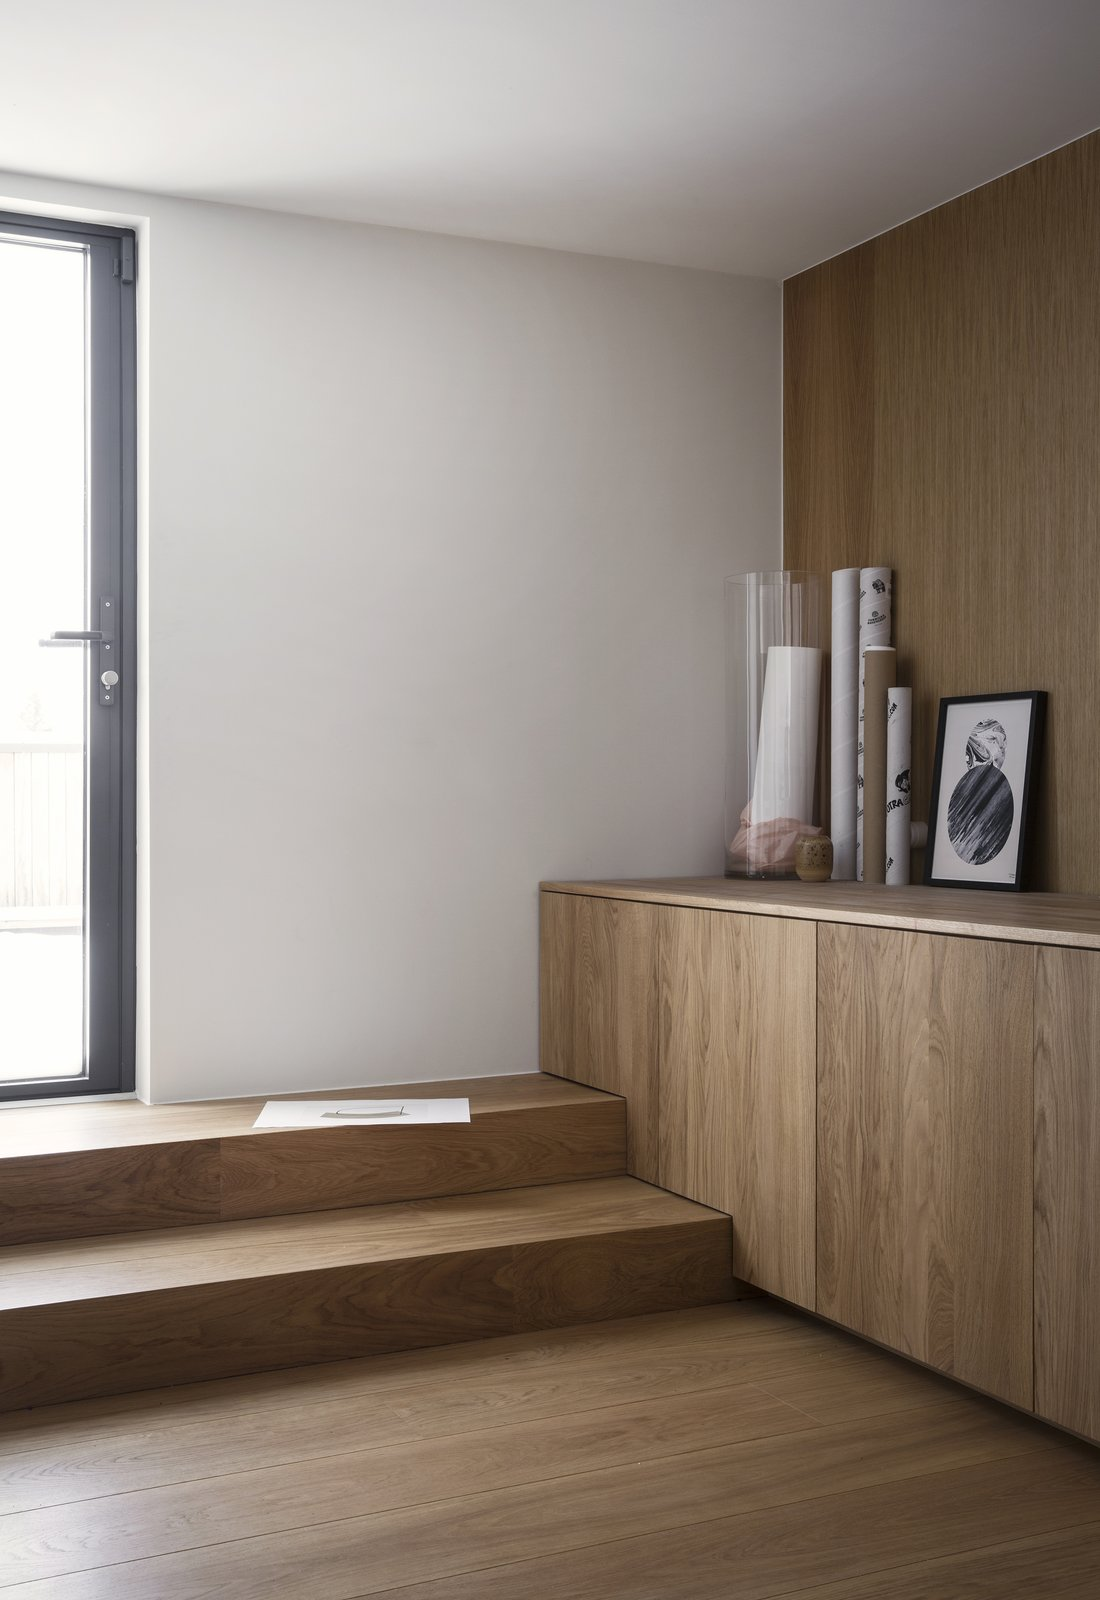 Storage Room and Cabinet Storage Type  Photo 11 of 18 in A Cubic Dwelling in Norway Just Oozes Hygge